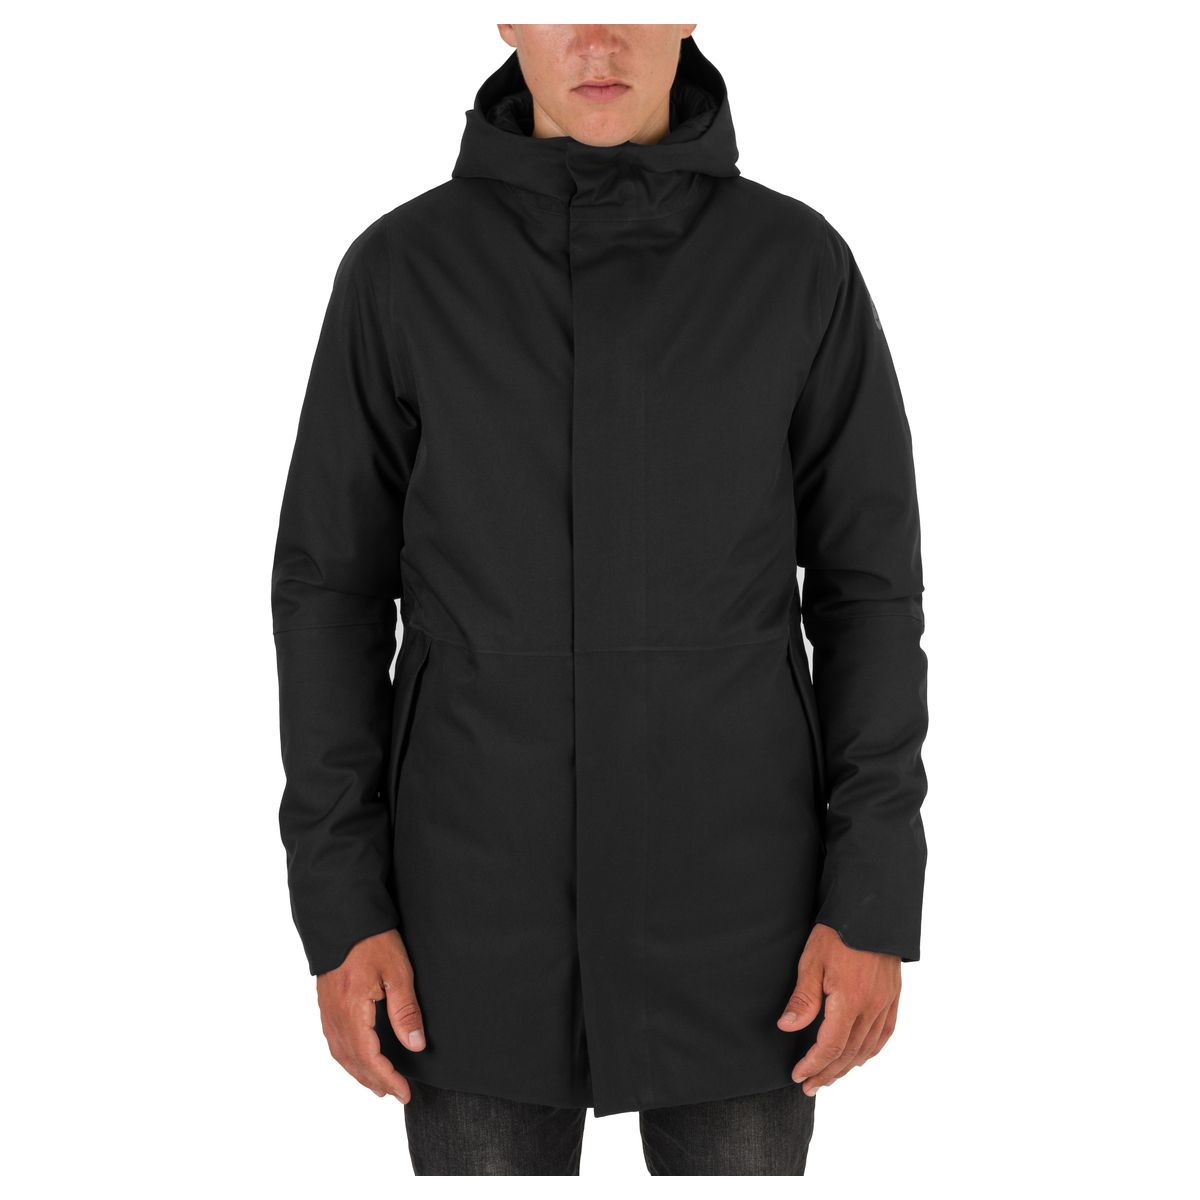 Clean Winter Rain Jacket Urban Outdoor Men fit example